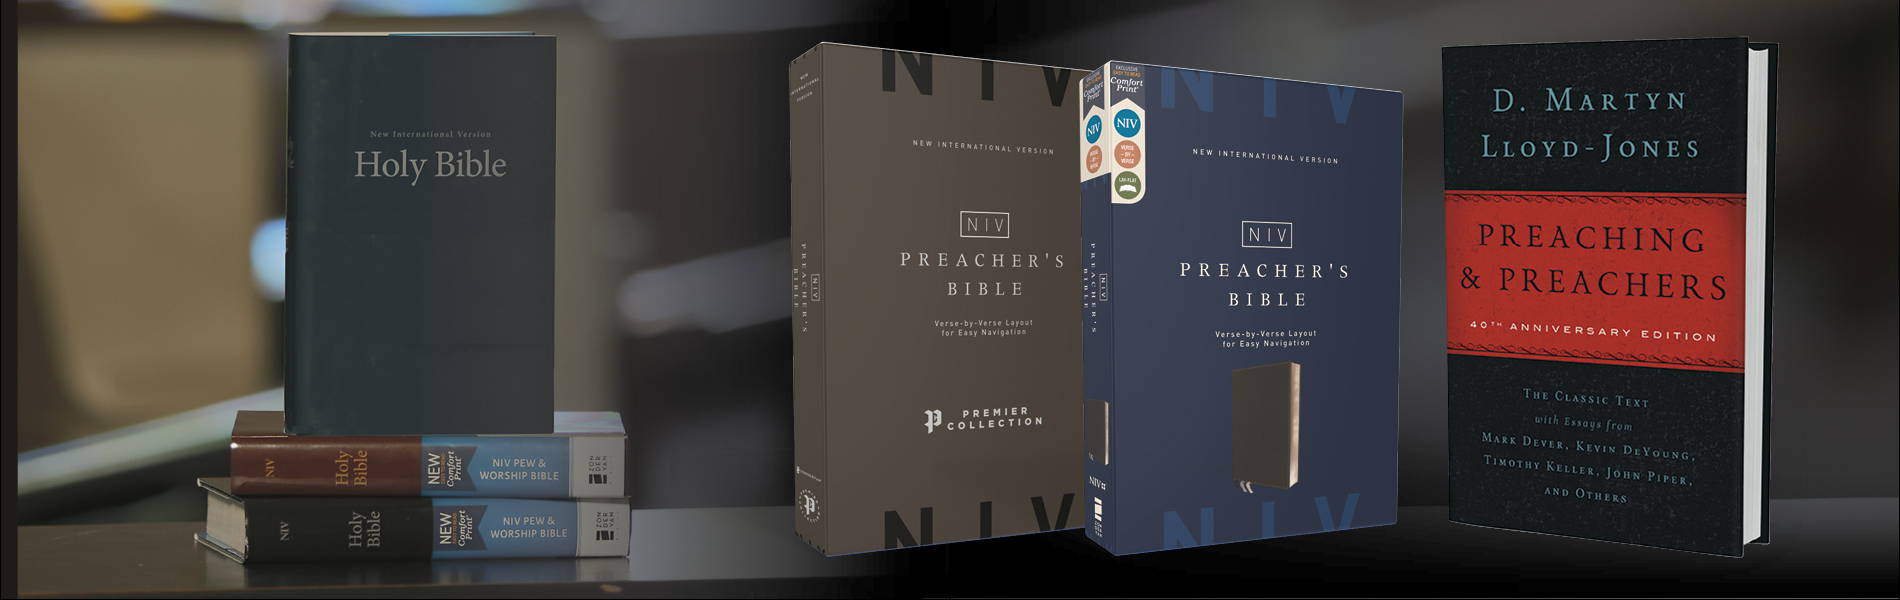 Pew Bibles & Preaching Resources